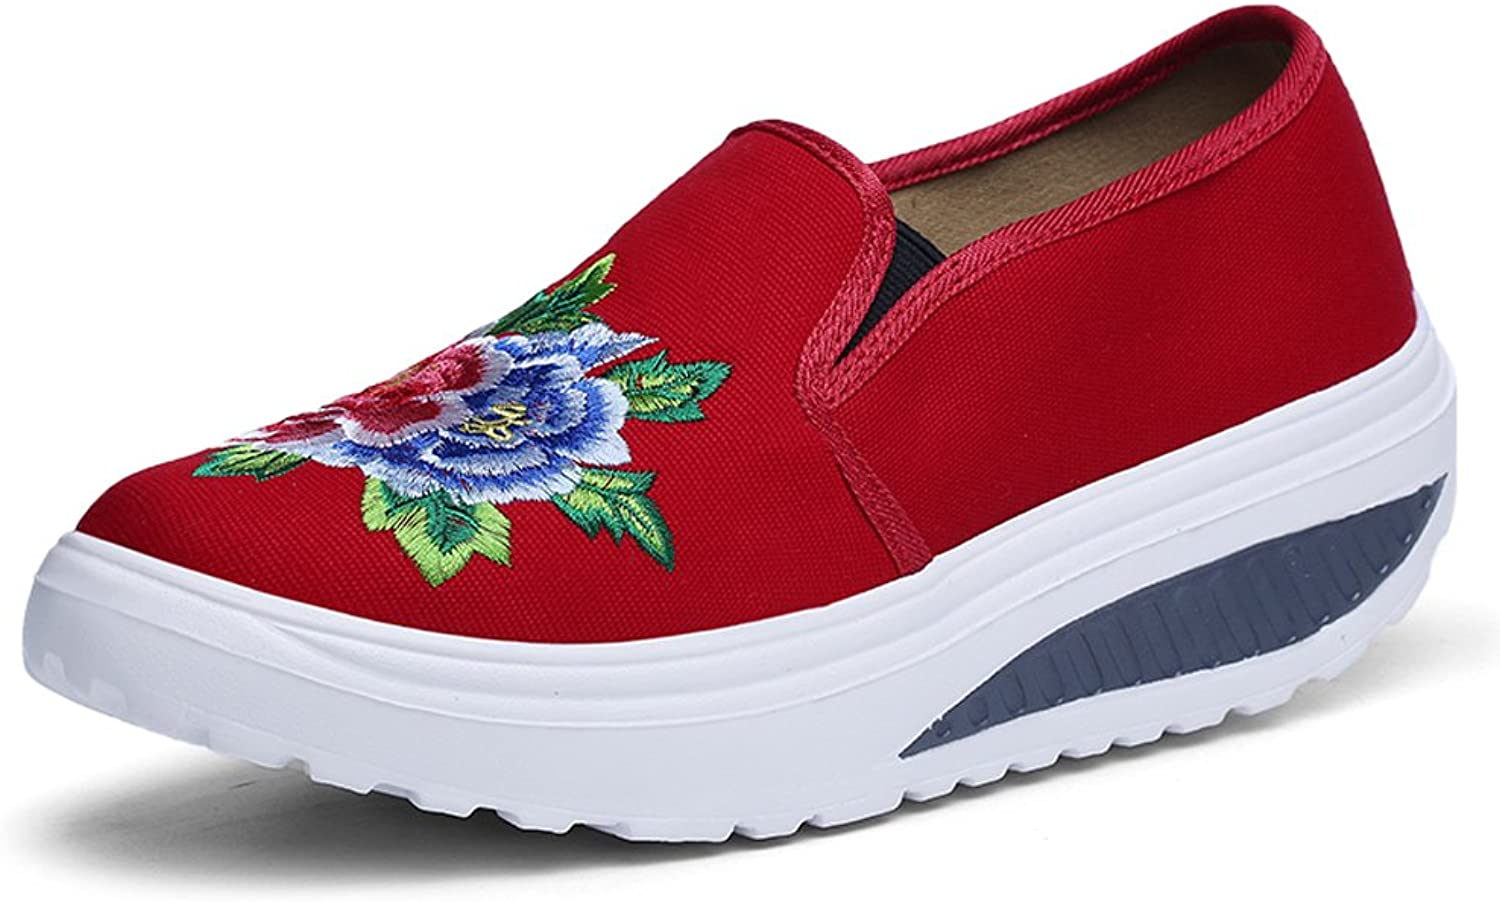 RX1681hongse39 EnllerviiD Women Embroidery Canvas Platform Walking shoes Slip On Toning Fitness Sneakers Red 7 B(M) US